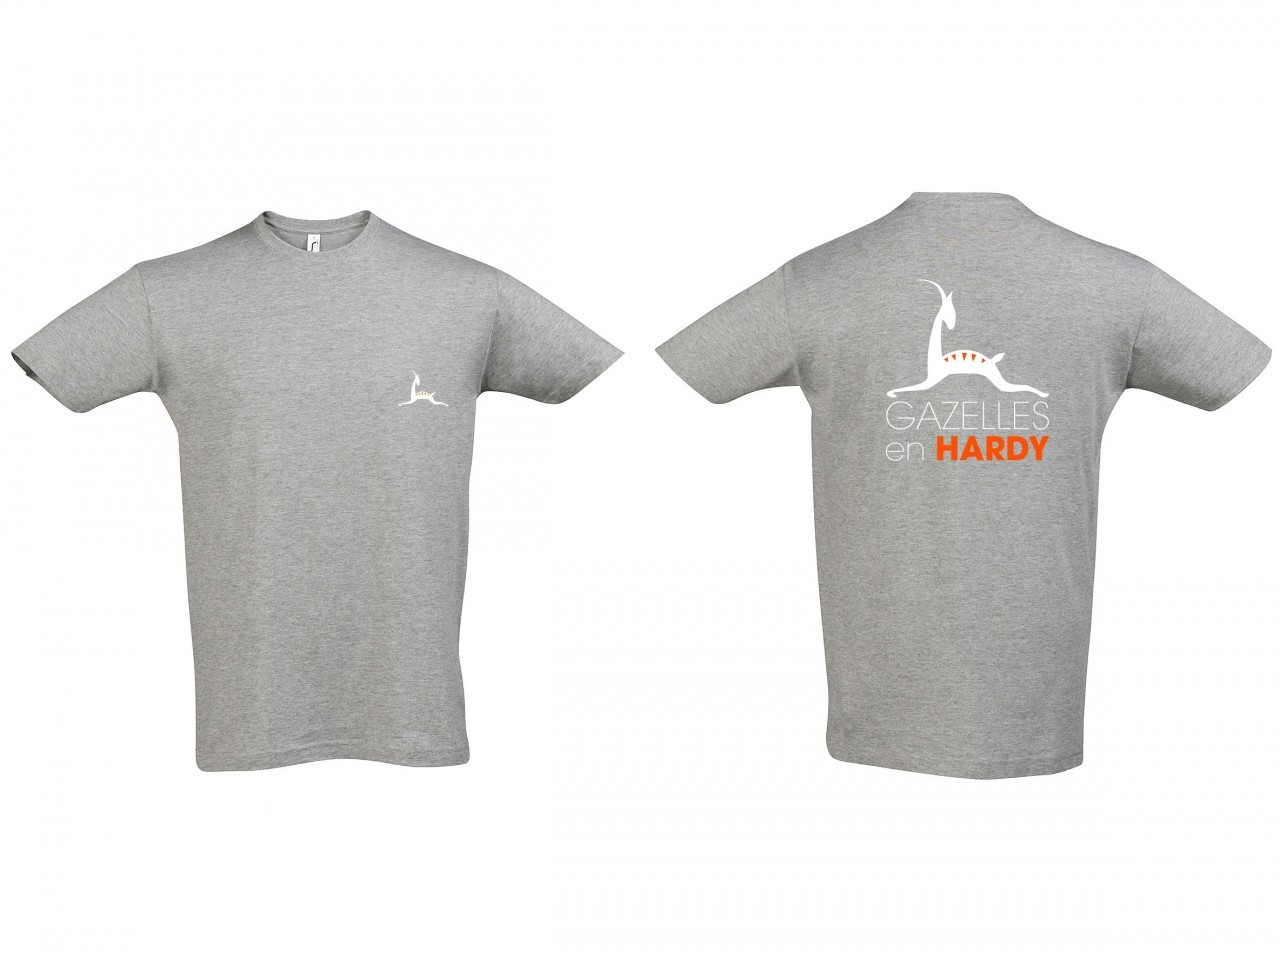 Tee-shirt association Gazelles en Hardy_Blanc Col rond